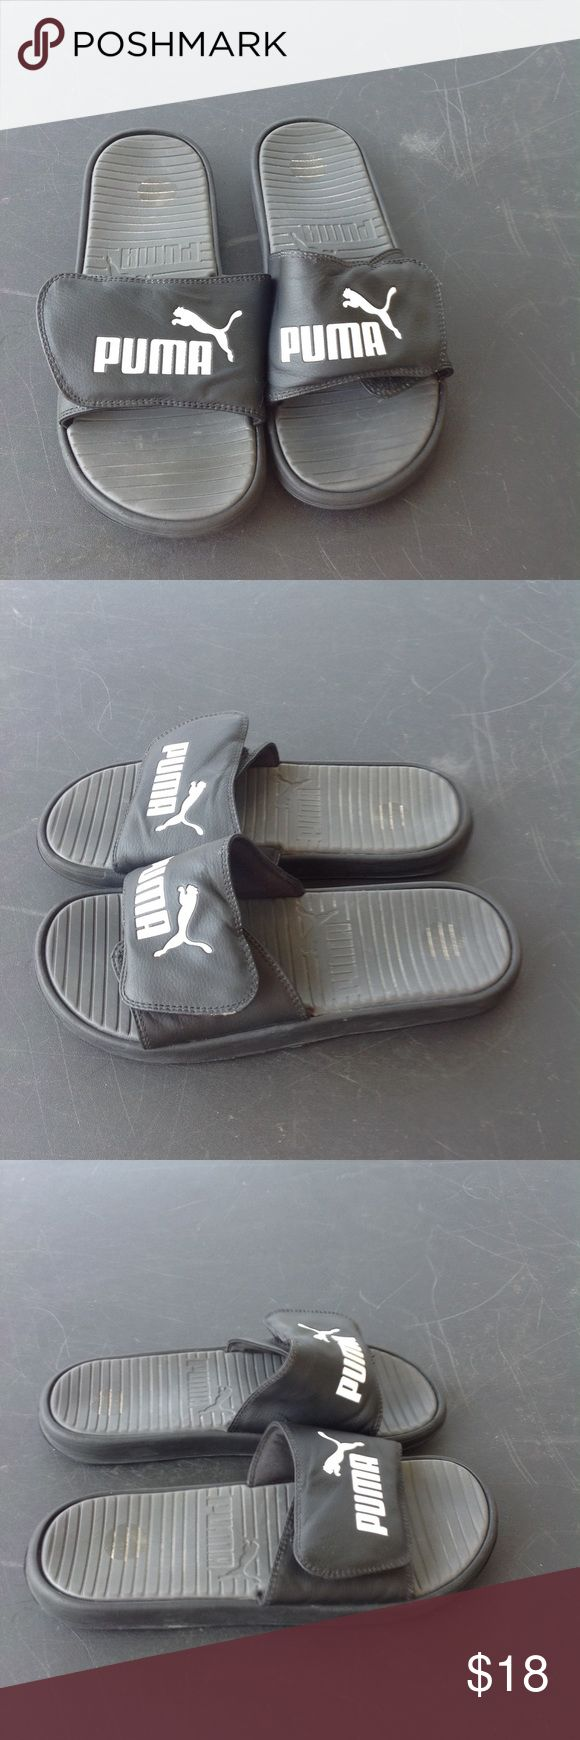 Mens puma sandals. They are a size 8, color is black, in great worn condition, sale is final i do not a accept returns., Puma Shoes Sandals & Flip-Flops